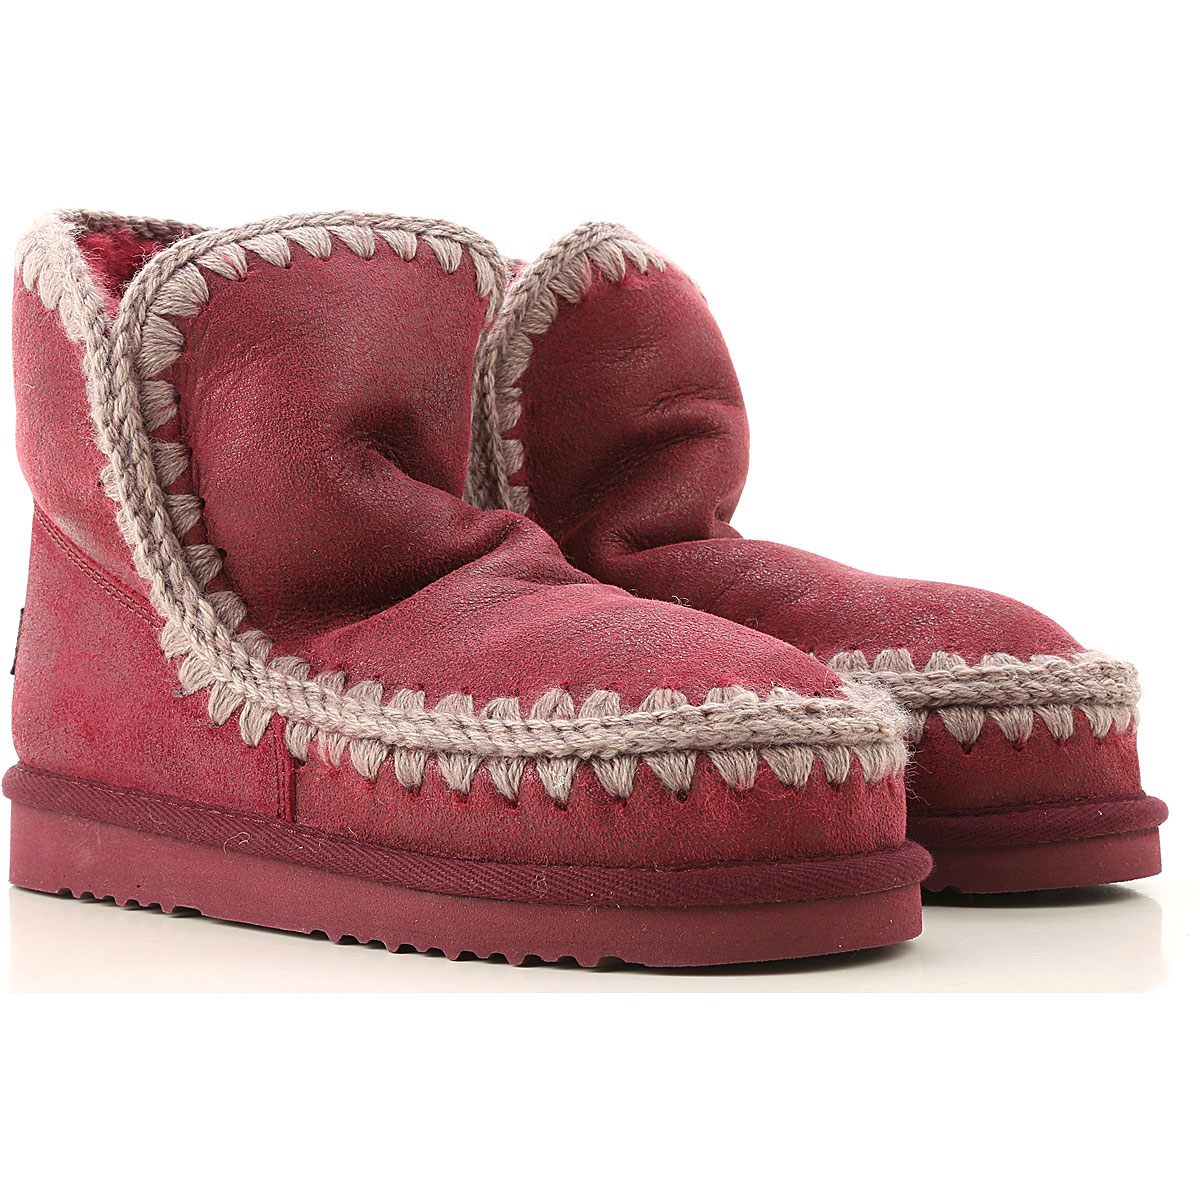 Mou Boots for Women, Booties On Sale, Black Cherry, Suede leather, 2019, EUR 37 - UK 4 - USA 6.5 EUR 39 - UK 6 - USA 8.5 EUR 40 - UK 7 - USA 9.5